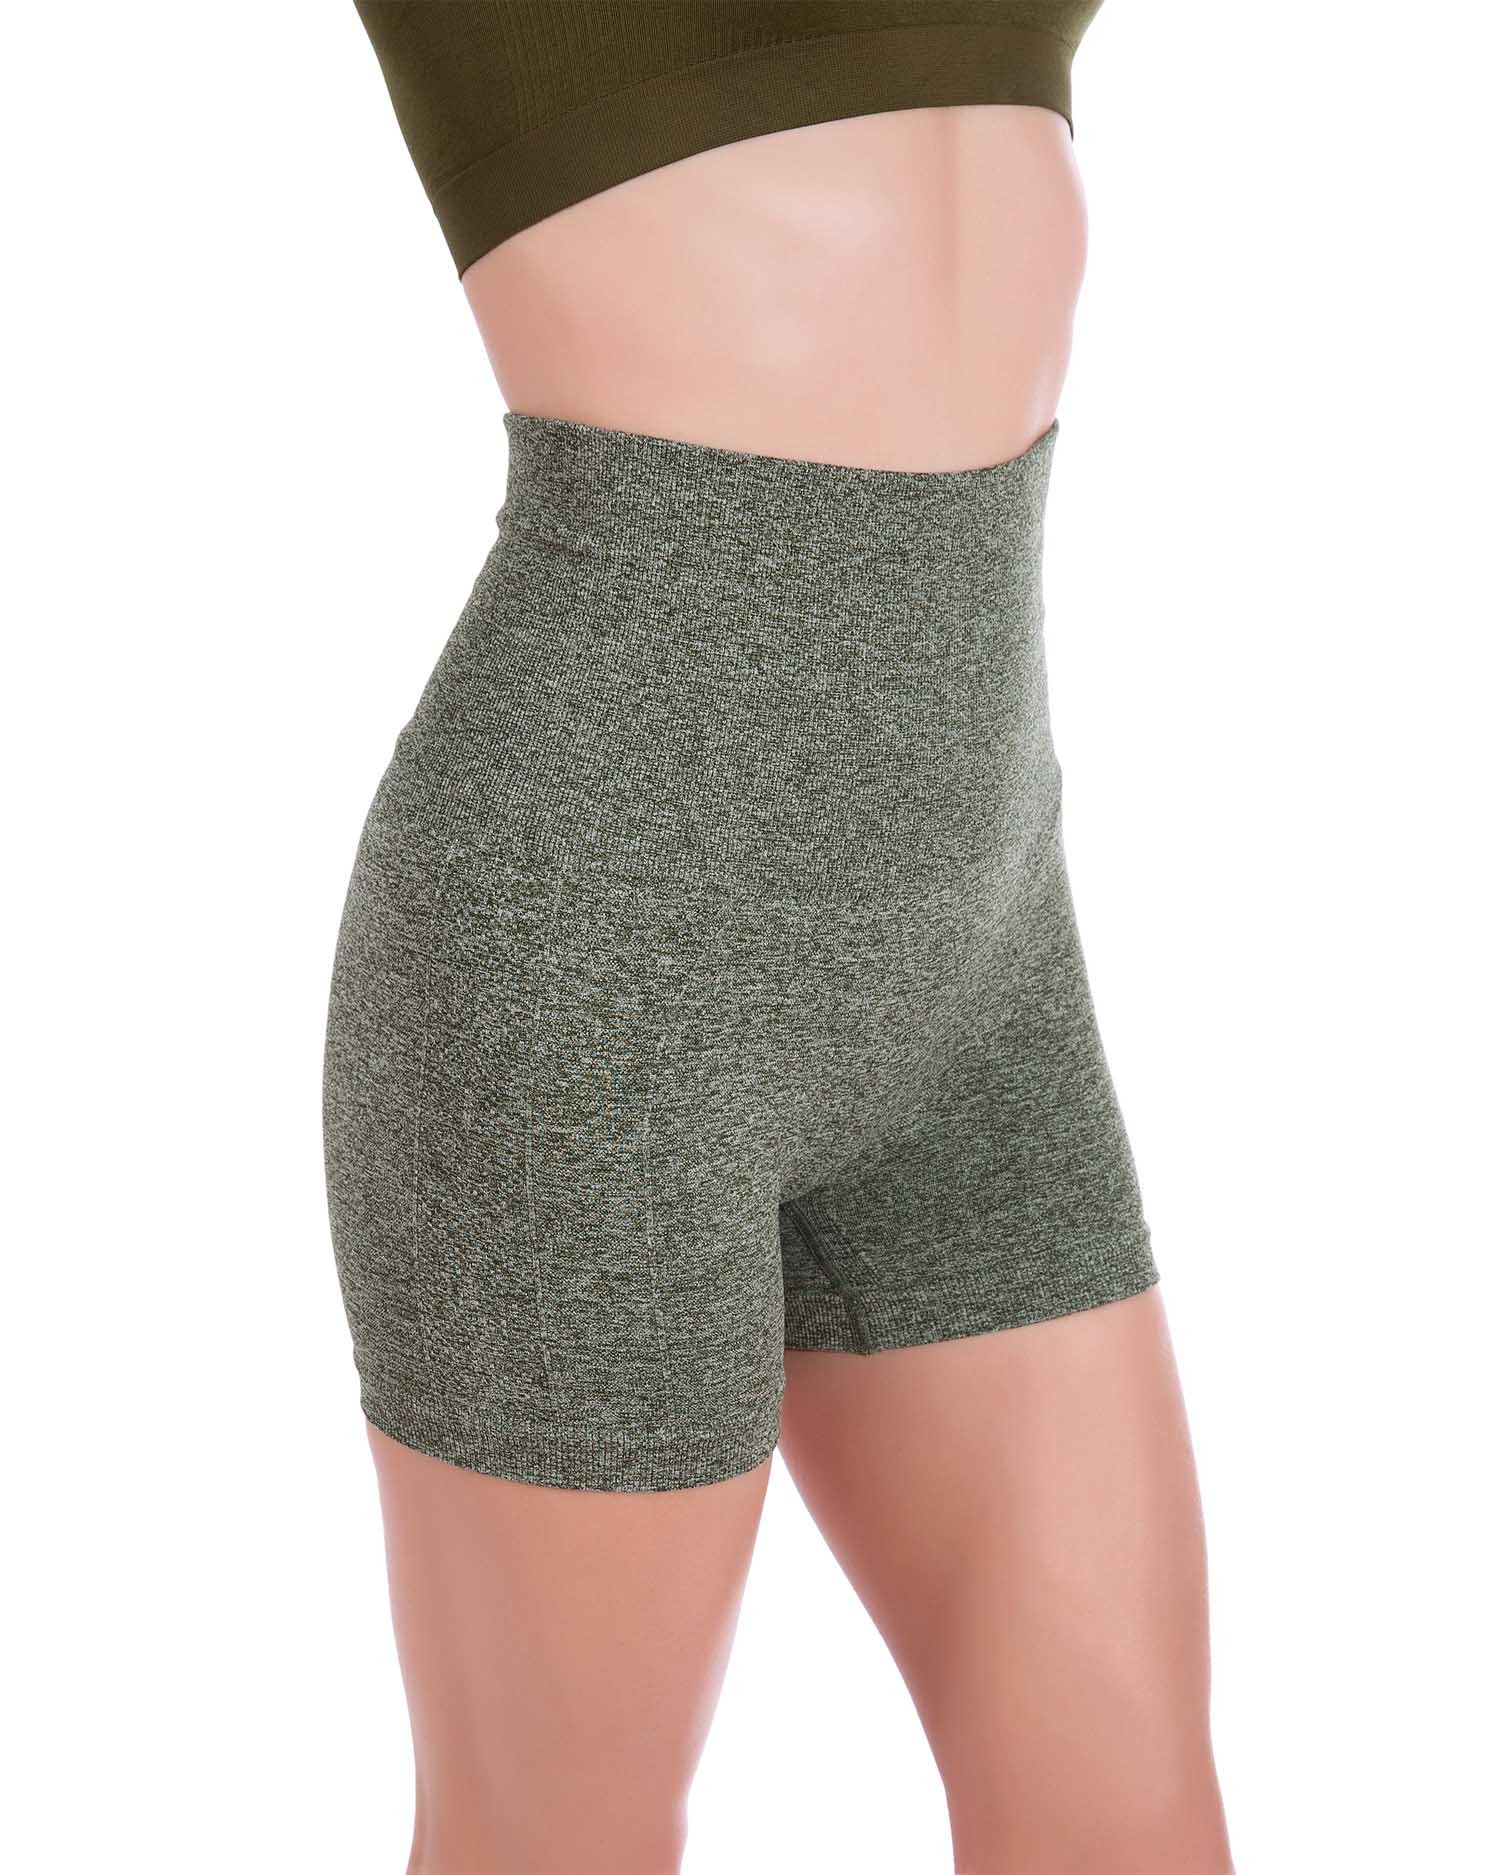 Homma Women's Tummy Control Fitness Workout Running Yoga Shorts (Large, H.Olive 2) by Homma